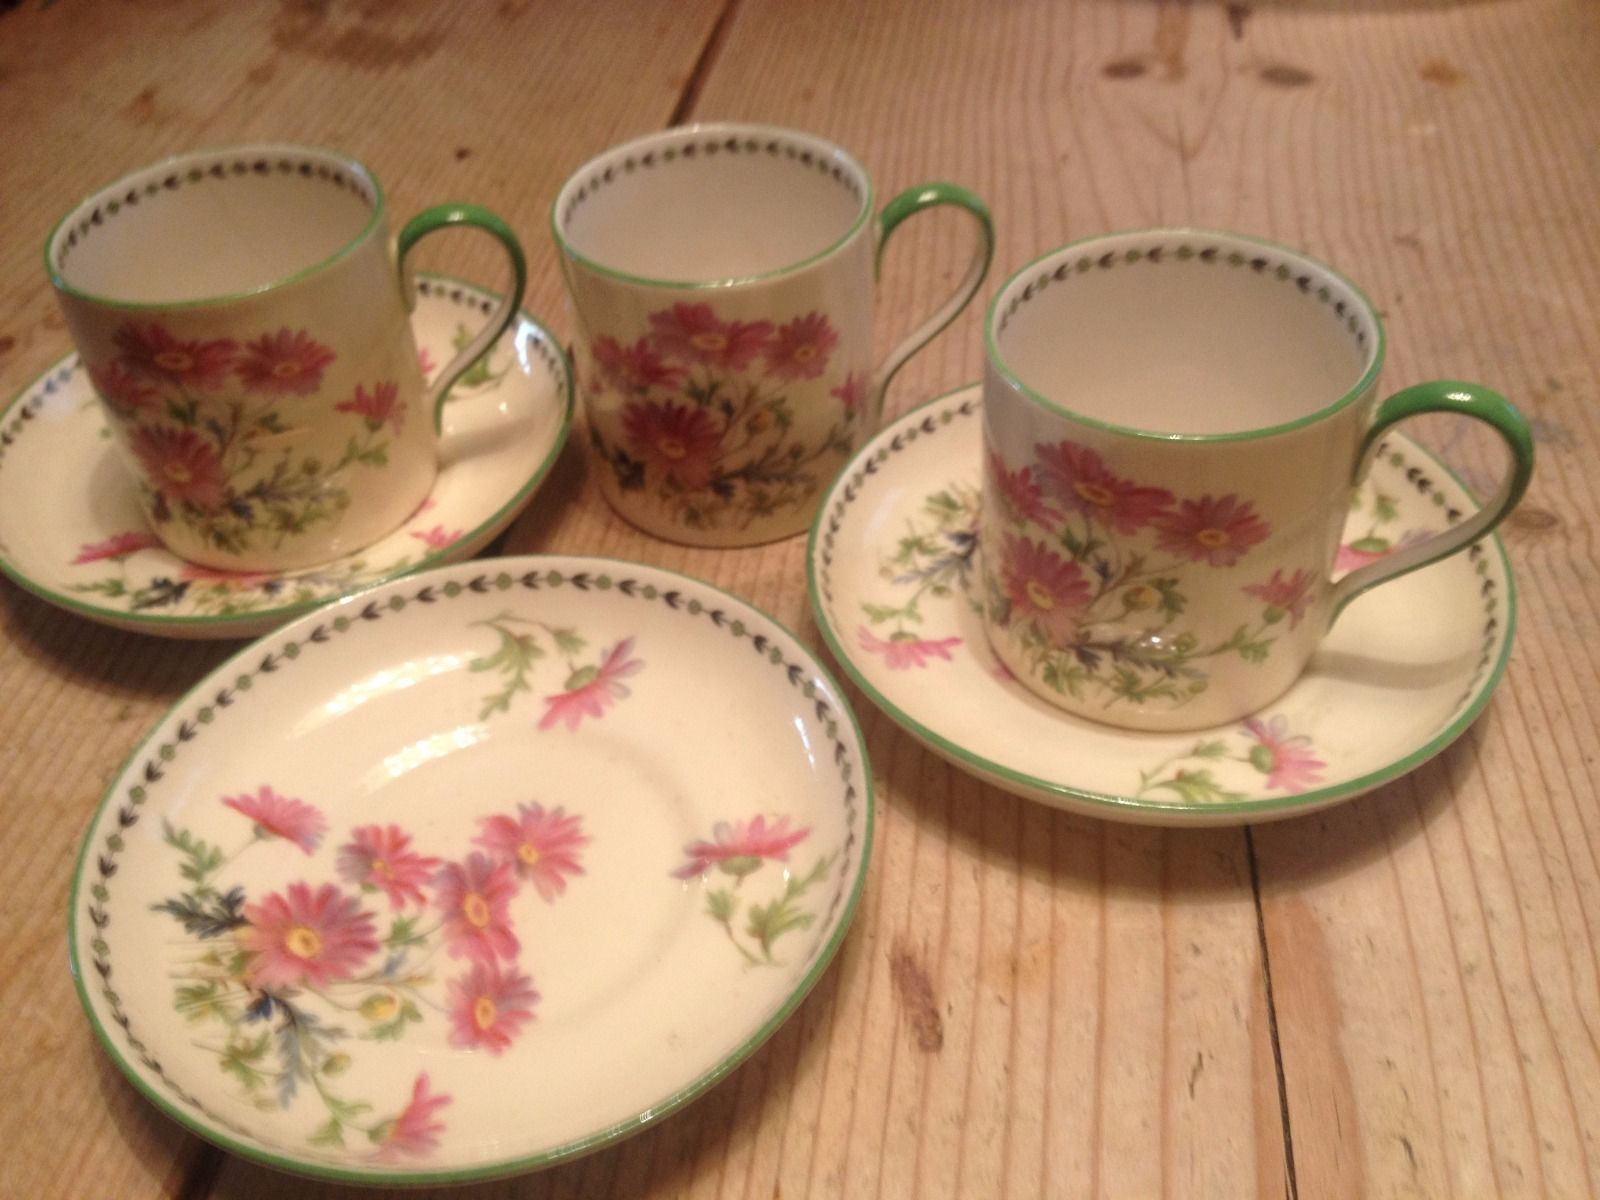 VINTAGE AYNSLEY 3 x coffee cans and saucers British porcelain china | eBay